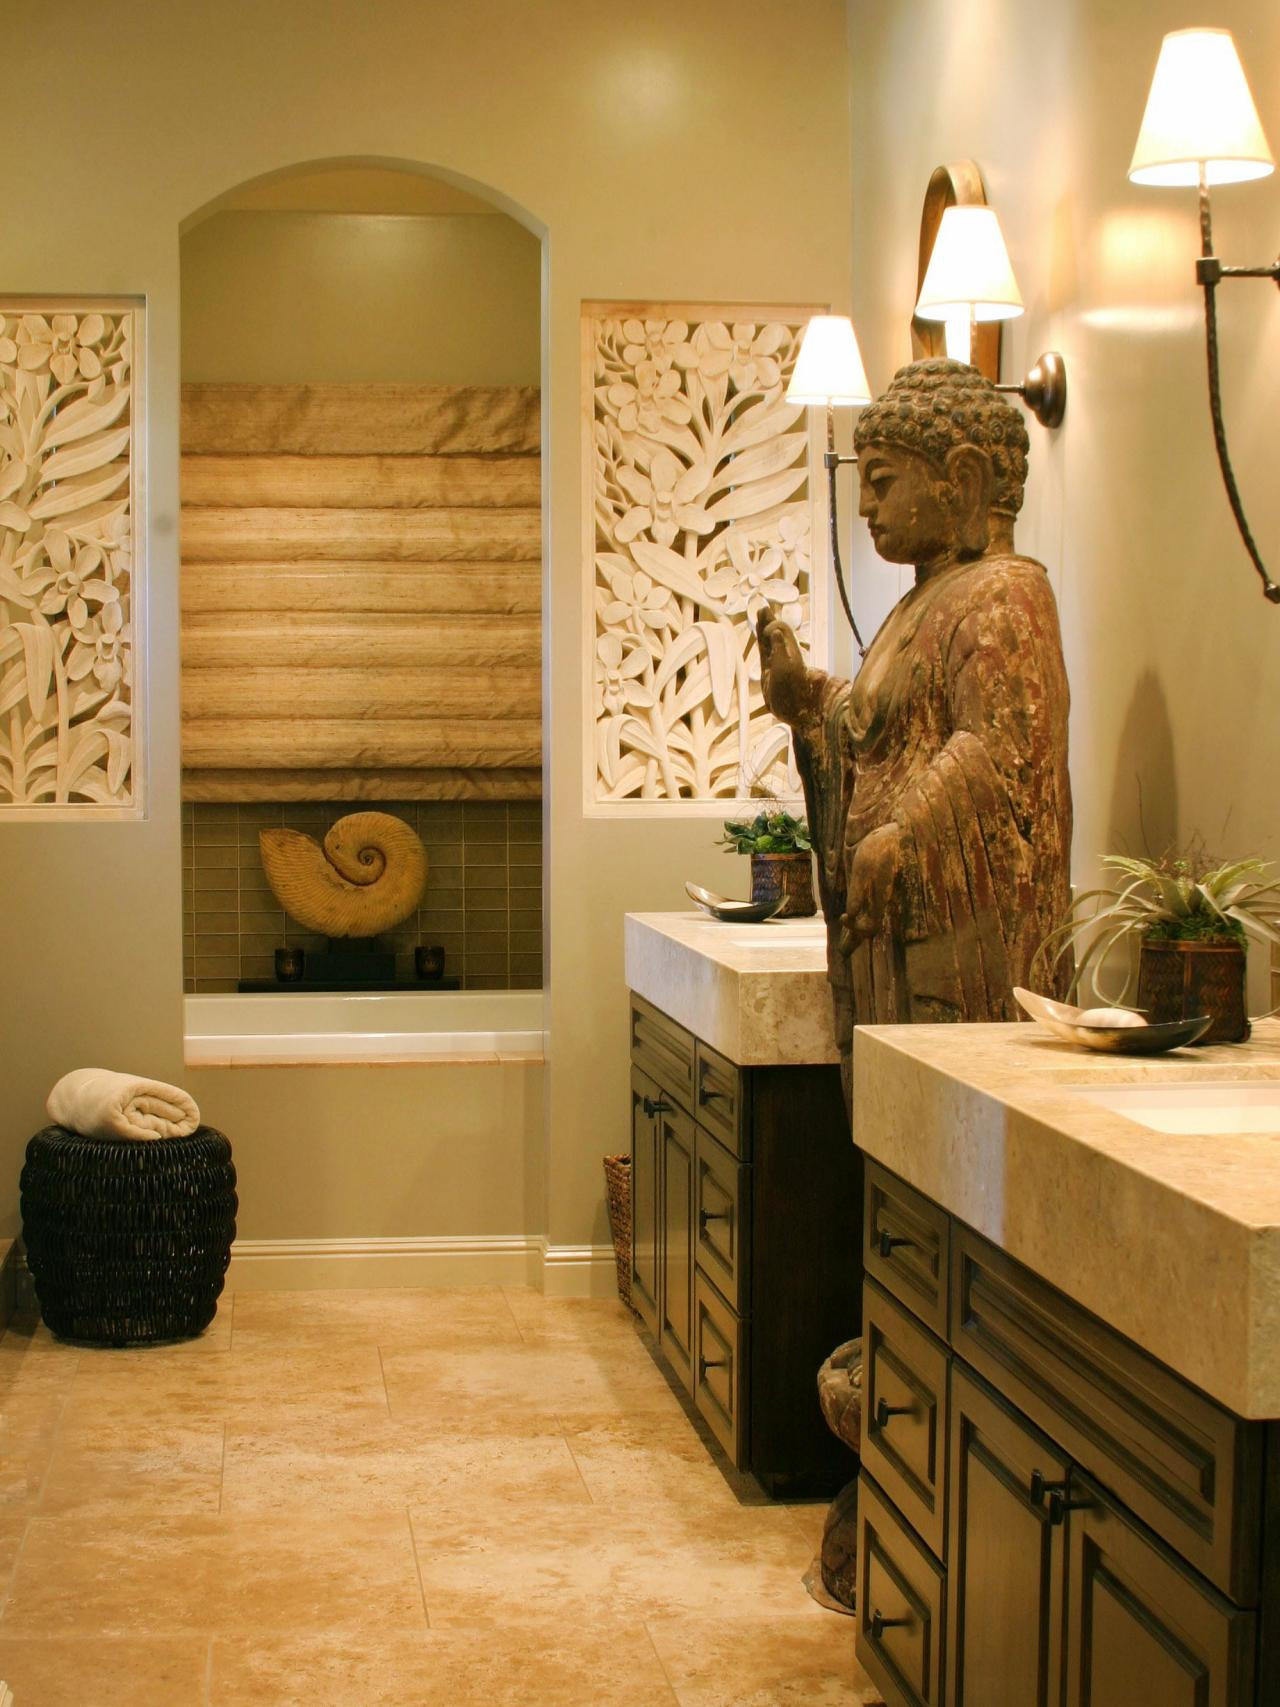 Asian design ideas interior design styles and color for Home design zen